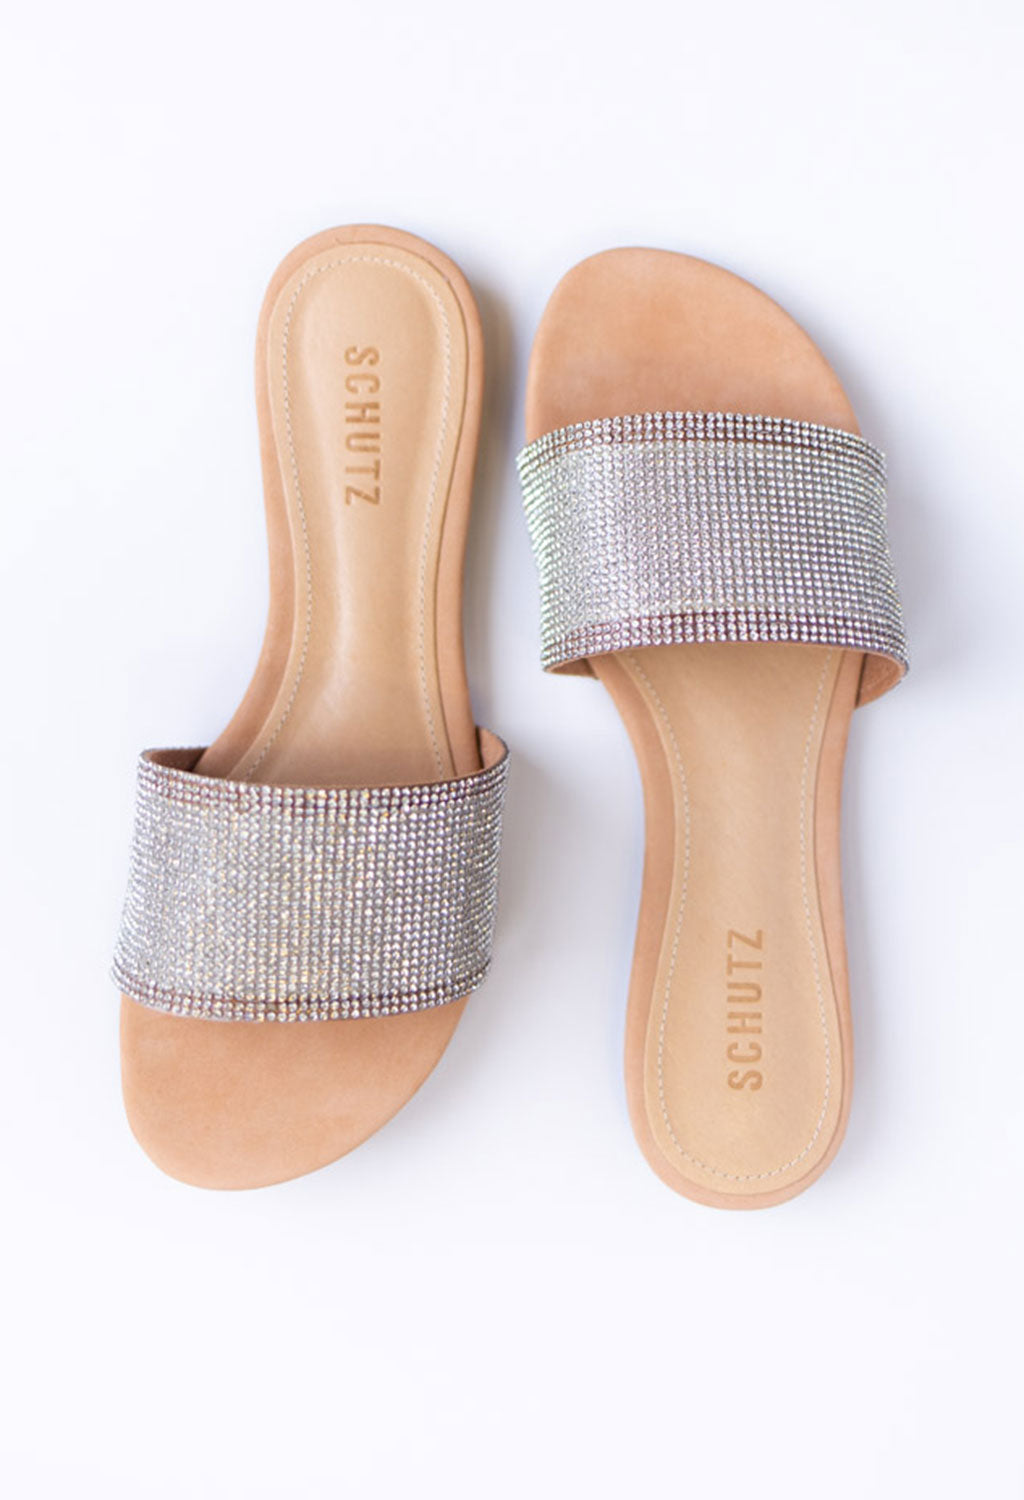 Schutz Queren Crystal-Embellished Slide - RUST & Co.